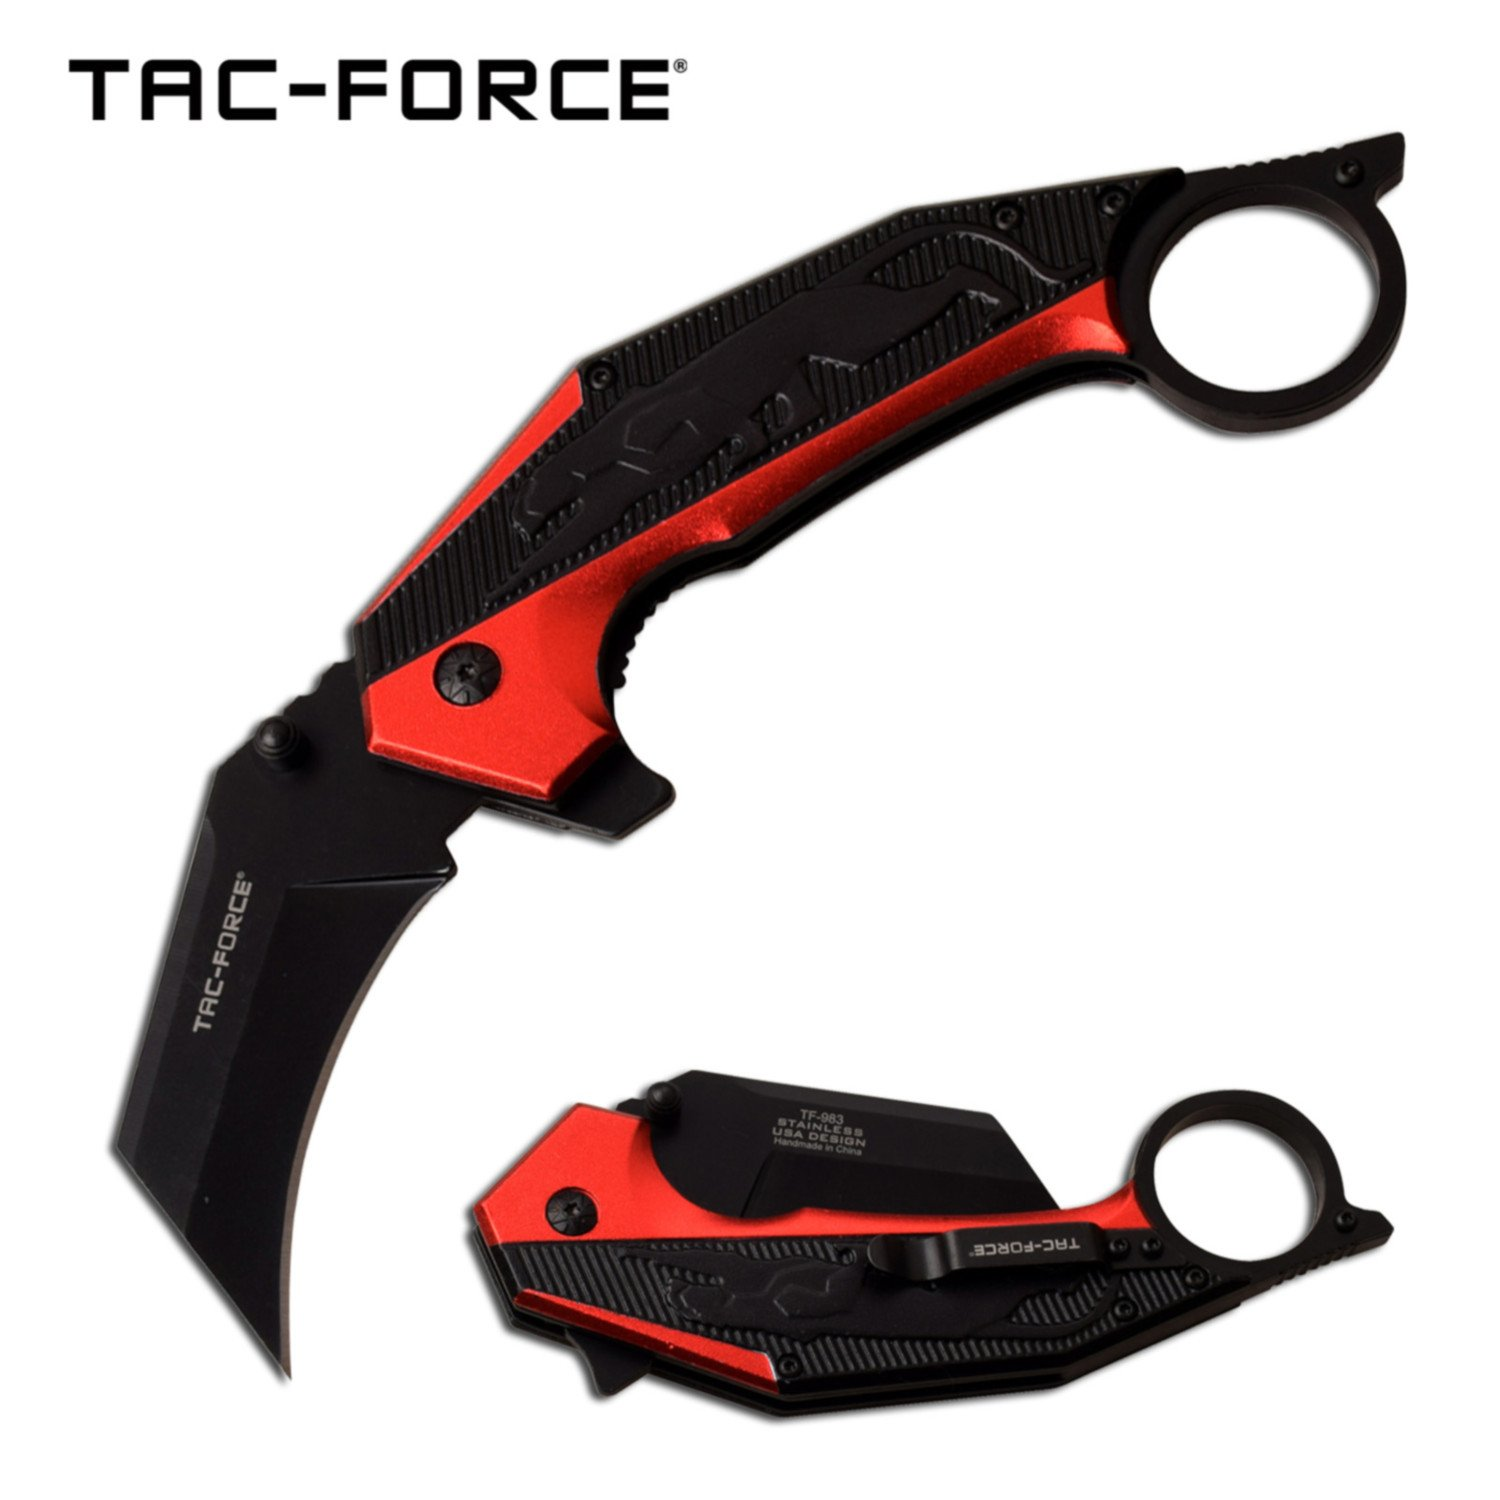 "Spring-Assist Folding Knife Tac-Force 2.75"" Black Blade Panther Red Tactical"